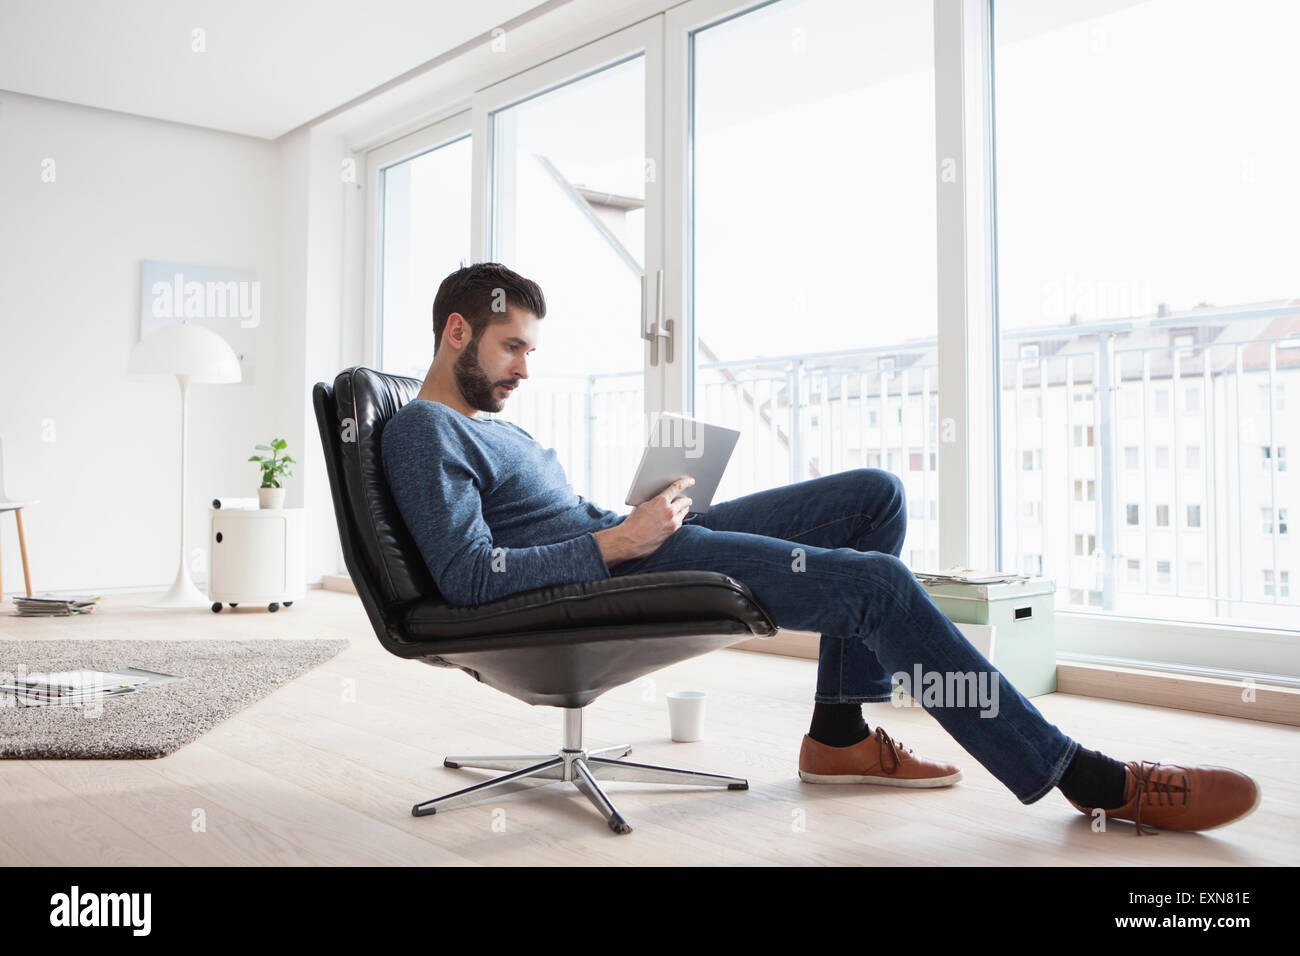 Man Living Room Young Man Sitting On Leather Chair In His Living Room Using